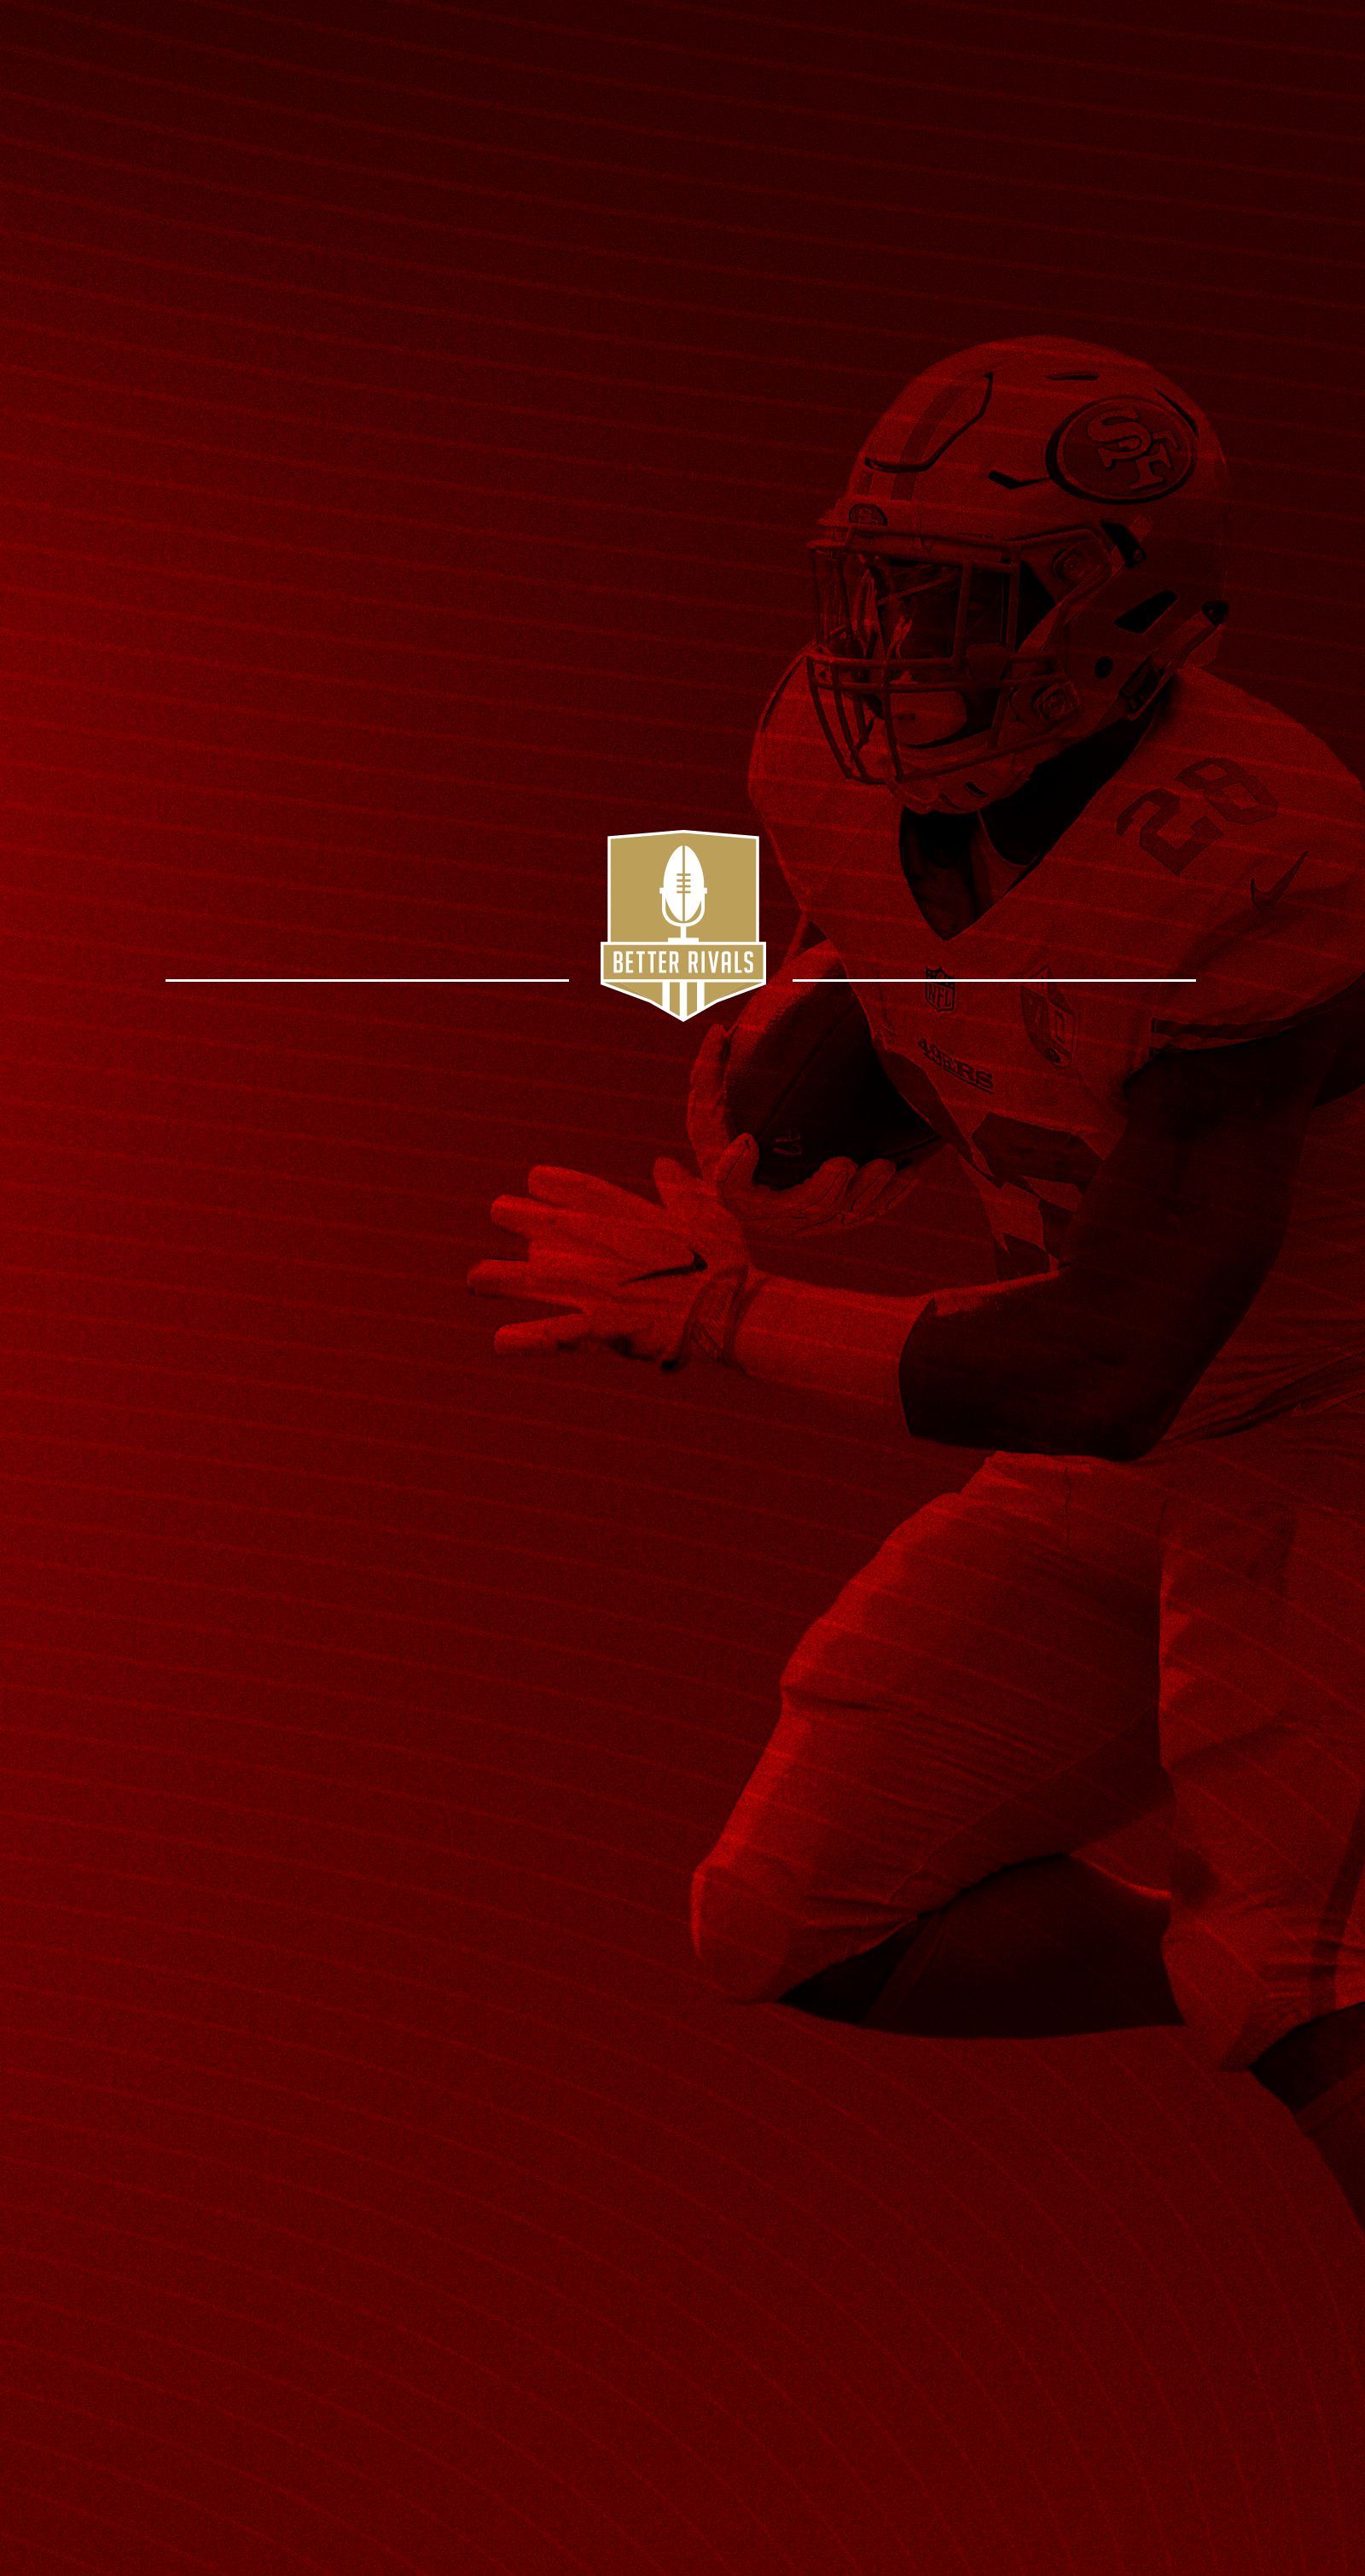 49ers 2017 schedule wallpapers for iphone android desktop niners 1 of 7 voltagebd